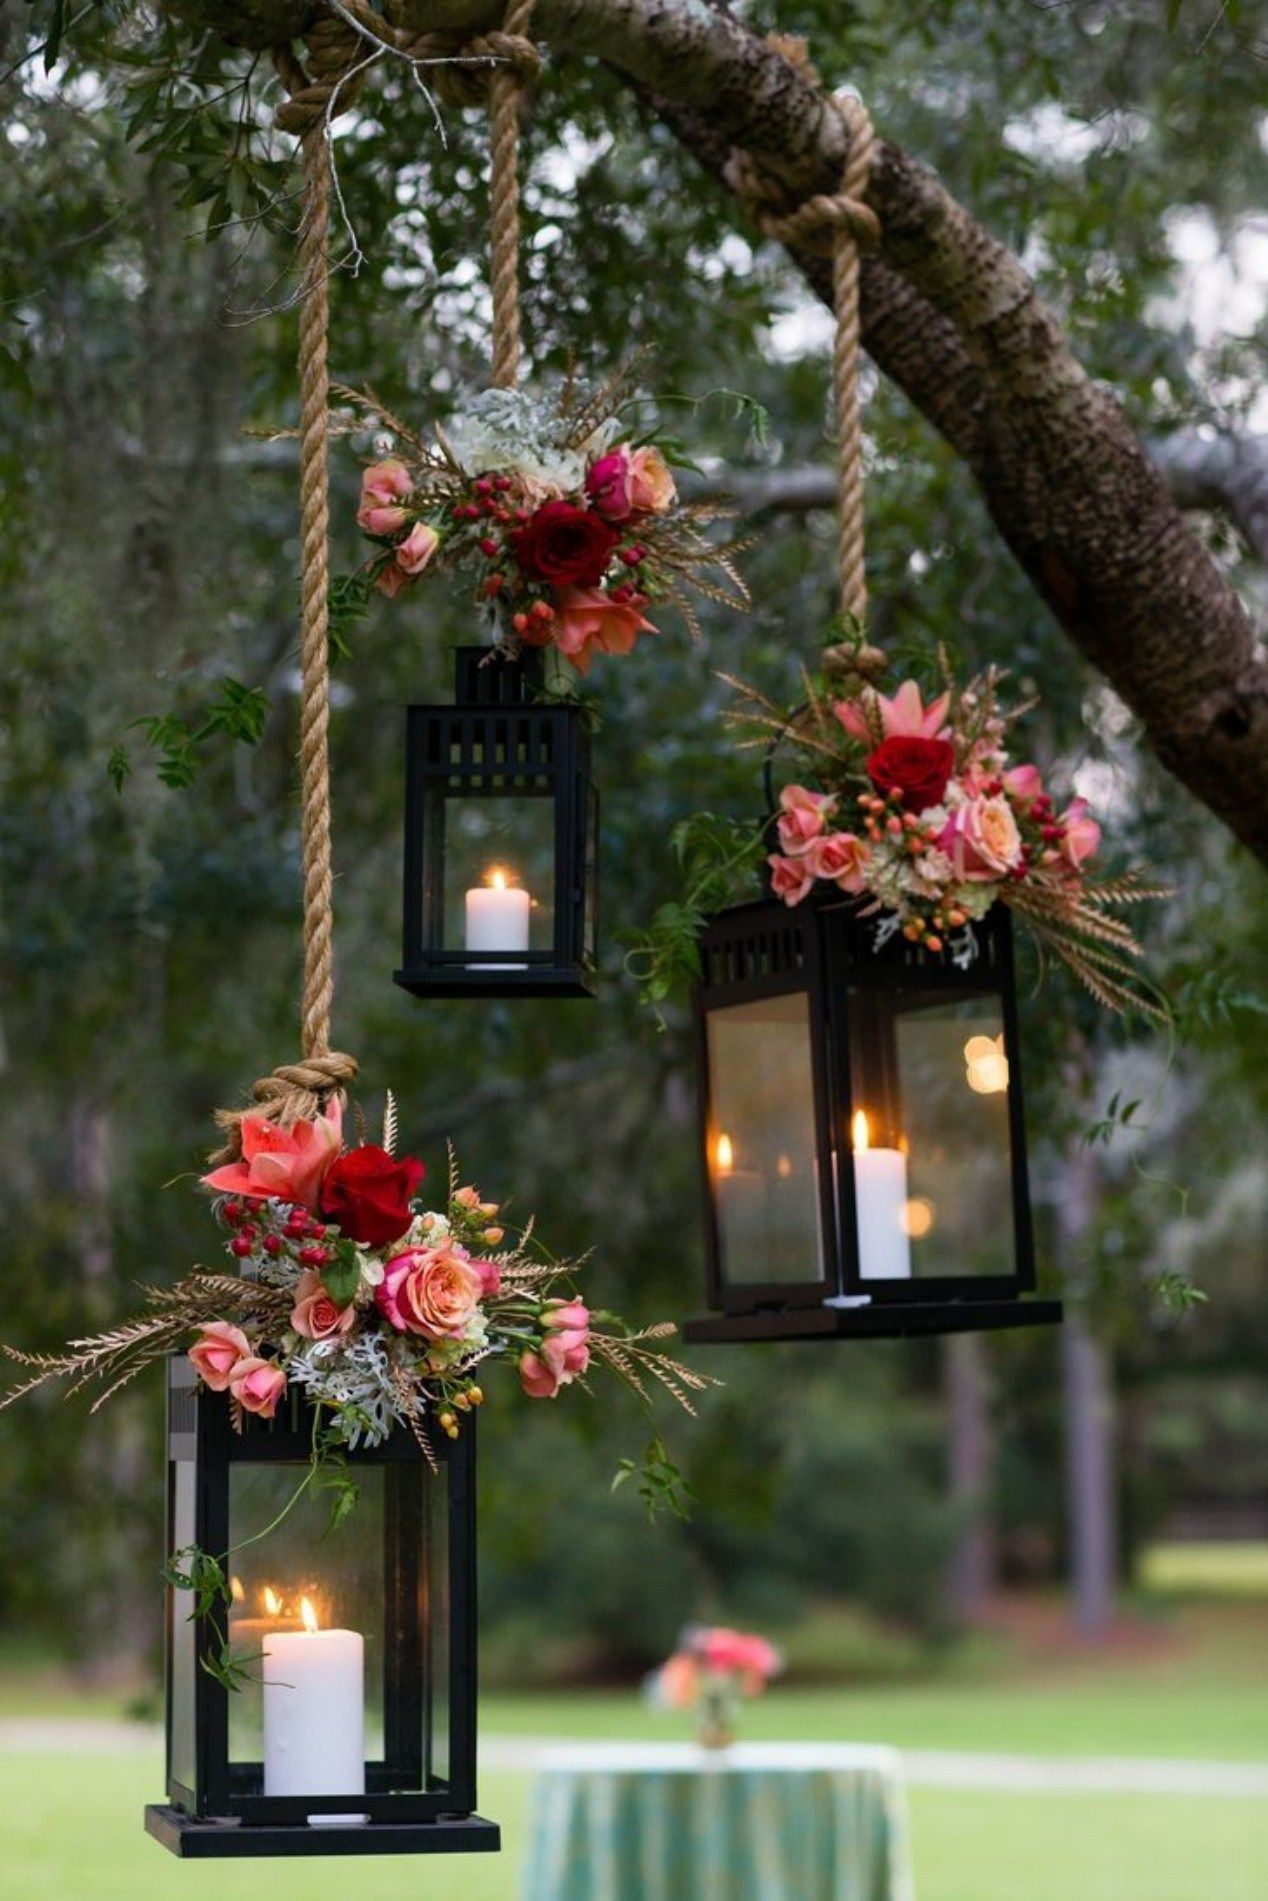 Garden wedding decoration ideas  Great outdoor wedding decoration ideas   Pinterest  Outdoor